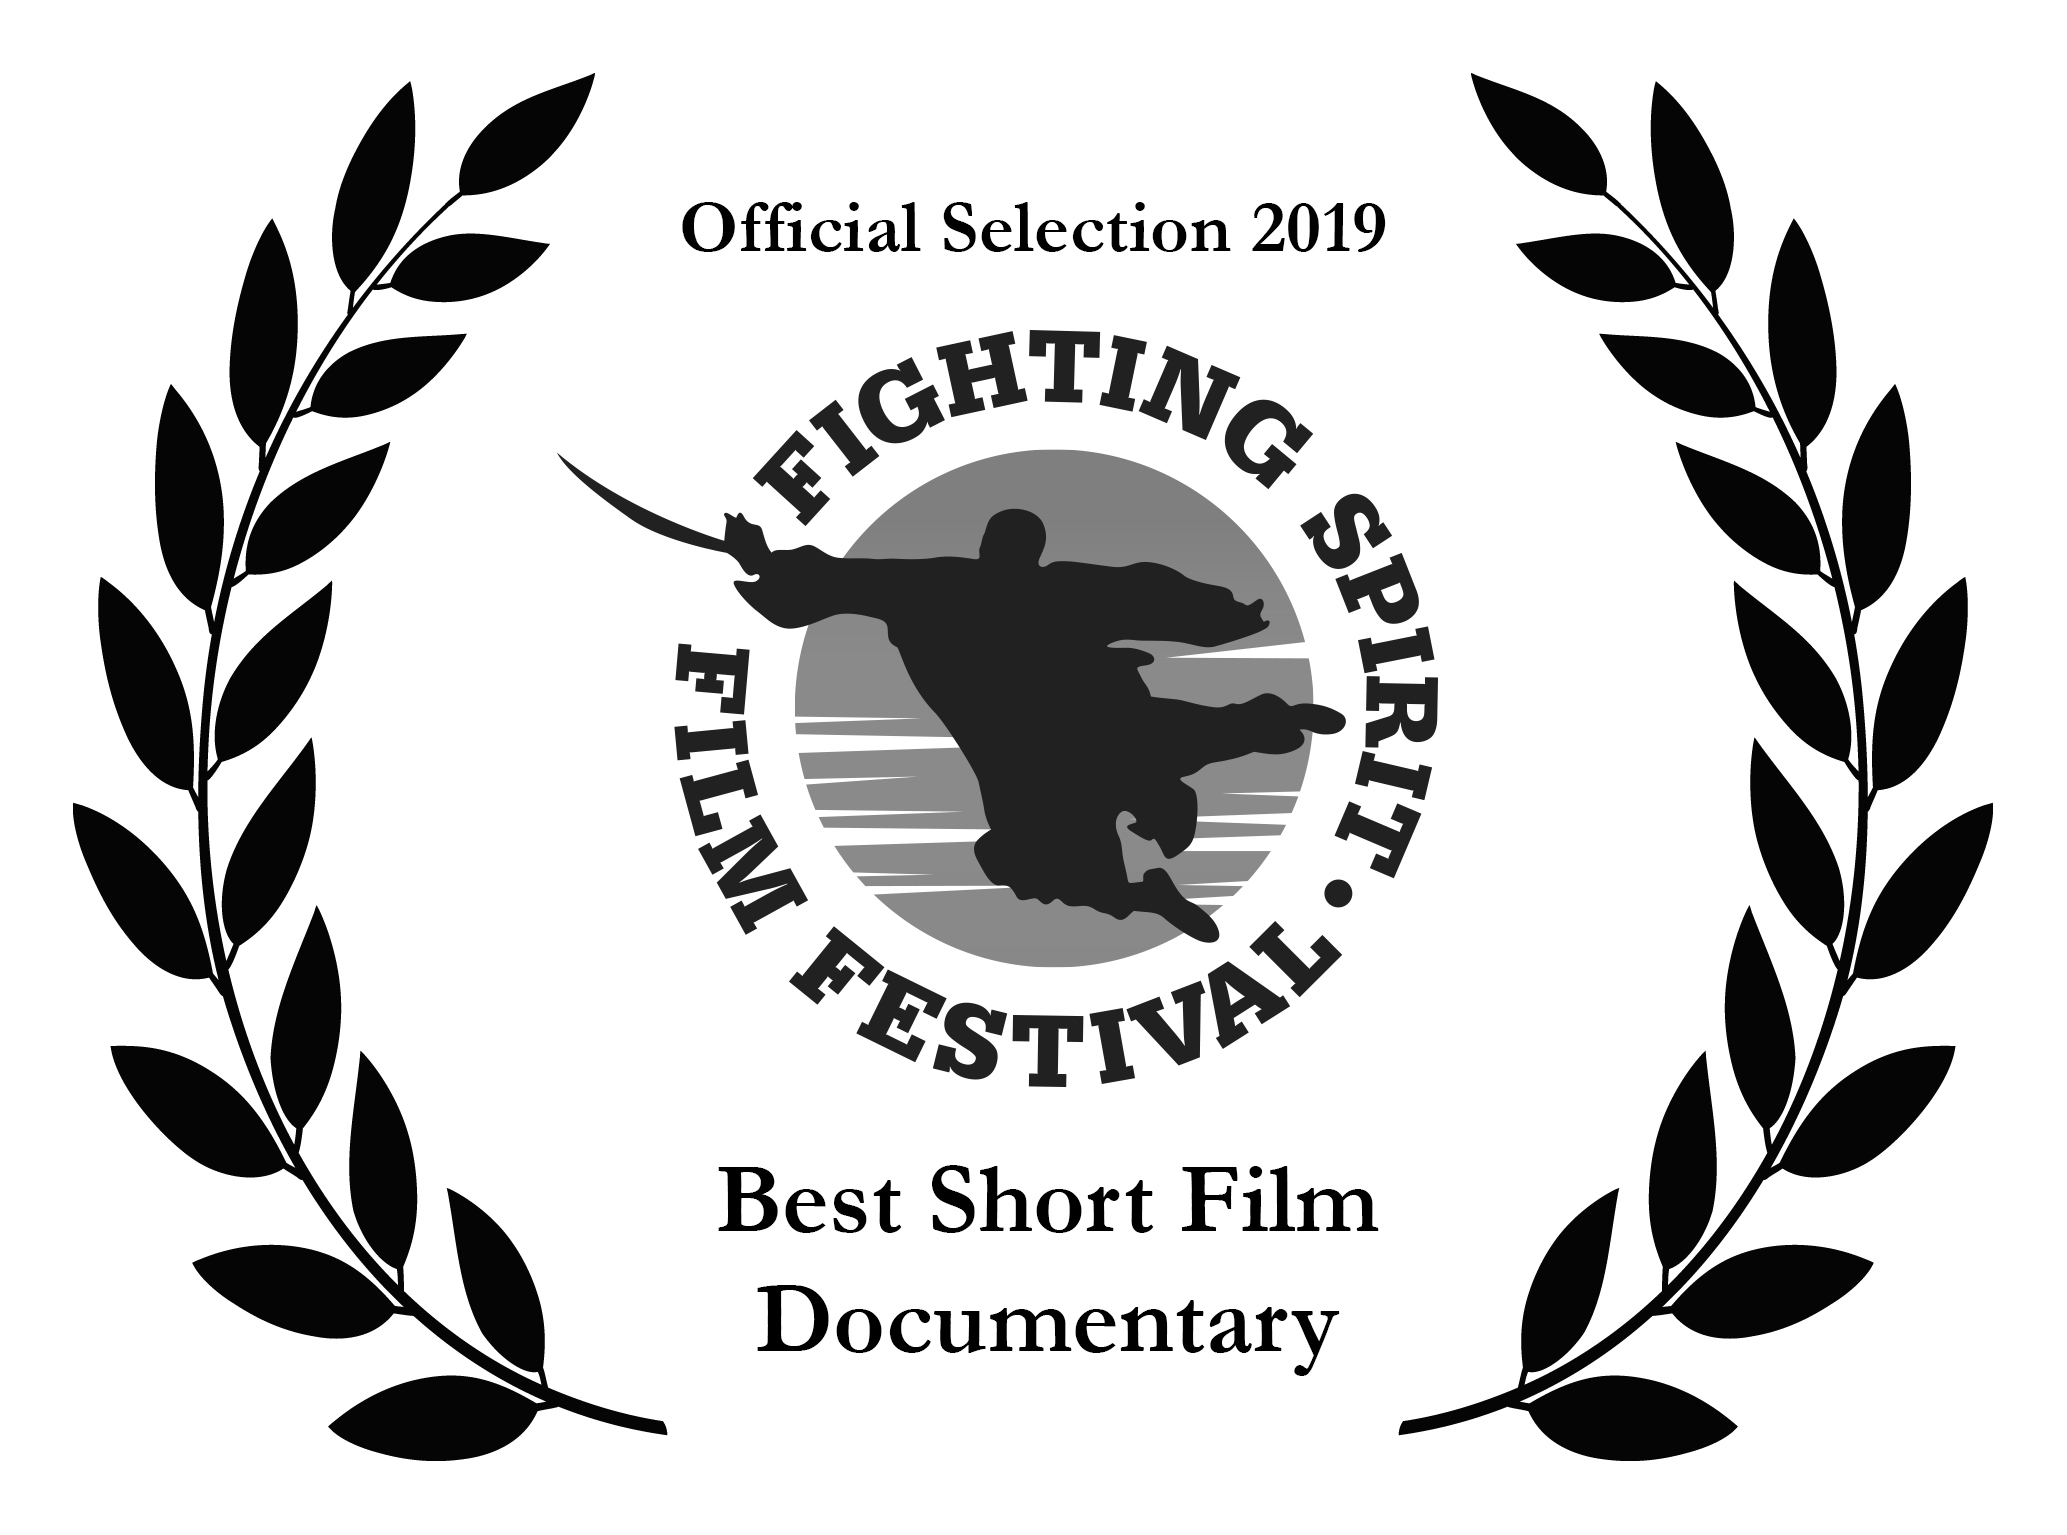 Fighting_Spirit_Film_Festival_2019_best_short_film_documentary.jpg